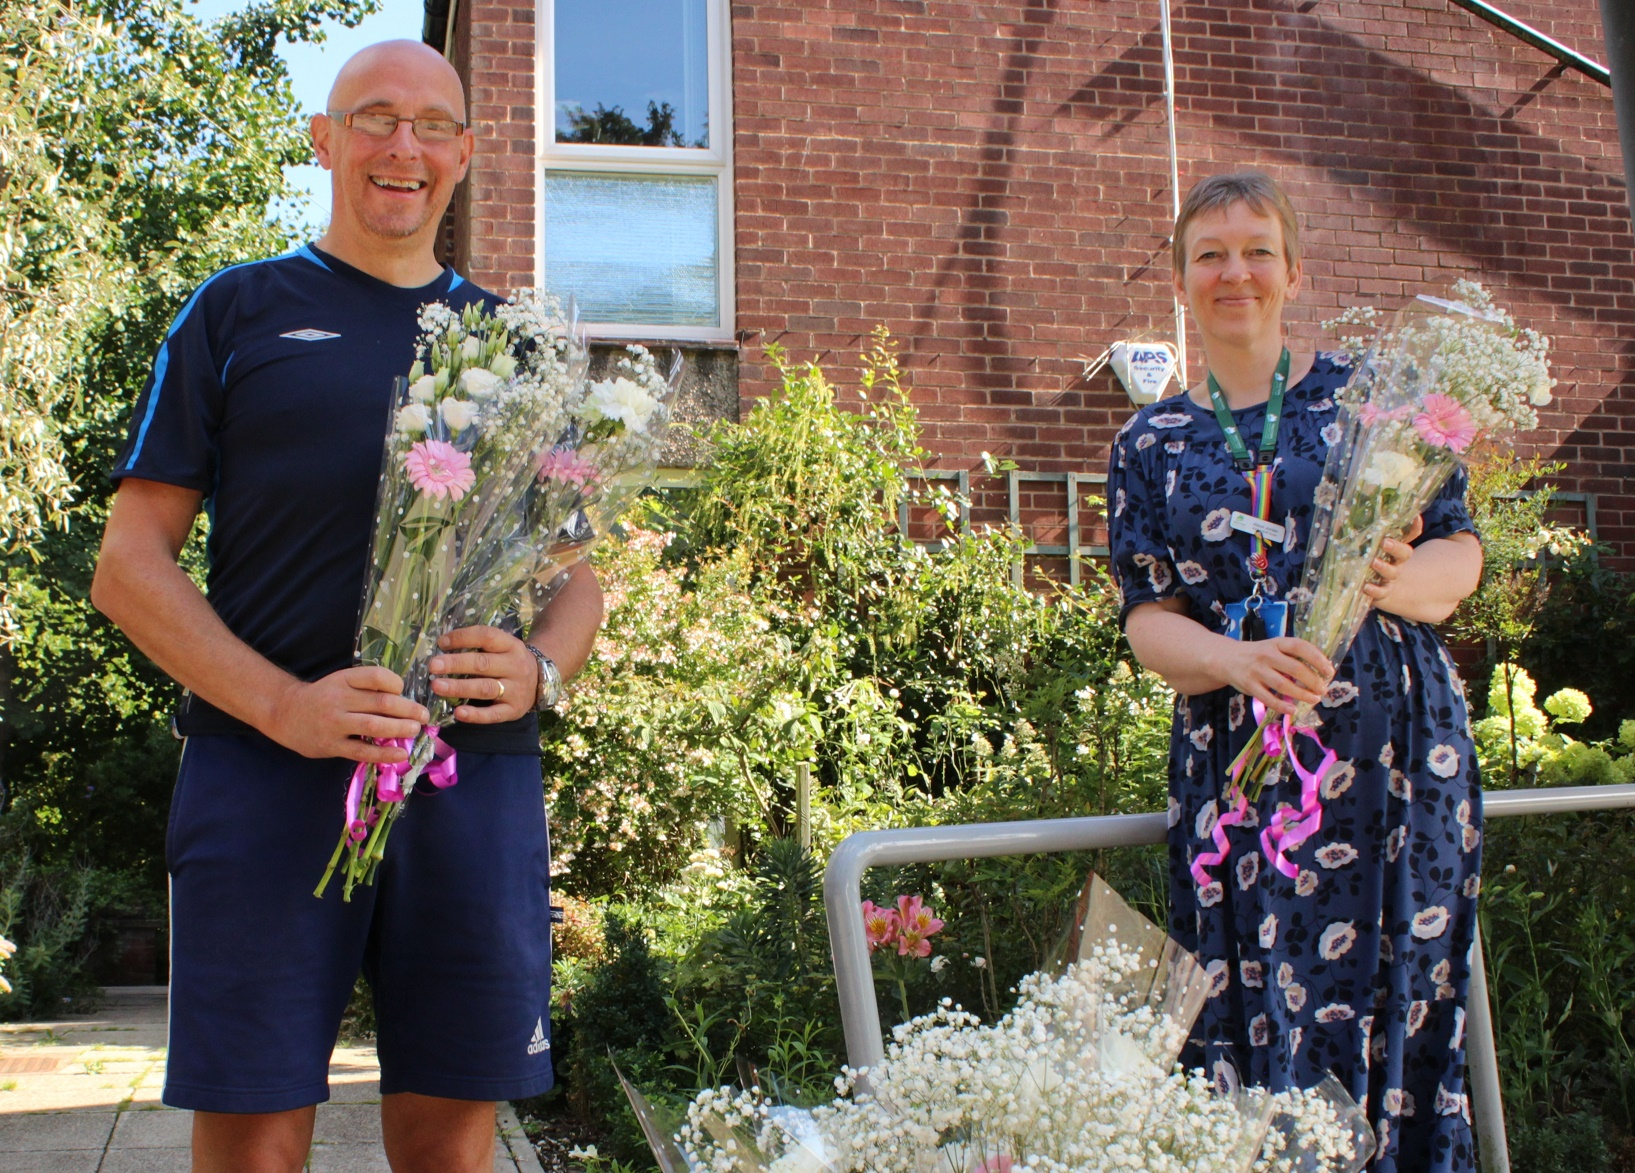 Hospice delivers flowers and cake to patients shielding during pandemic